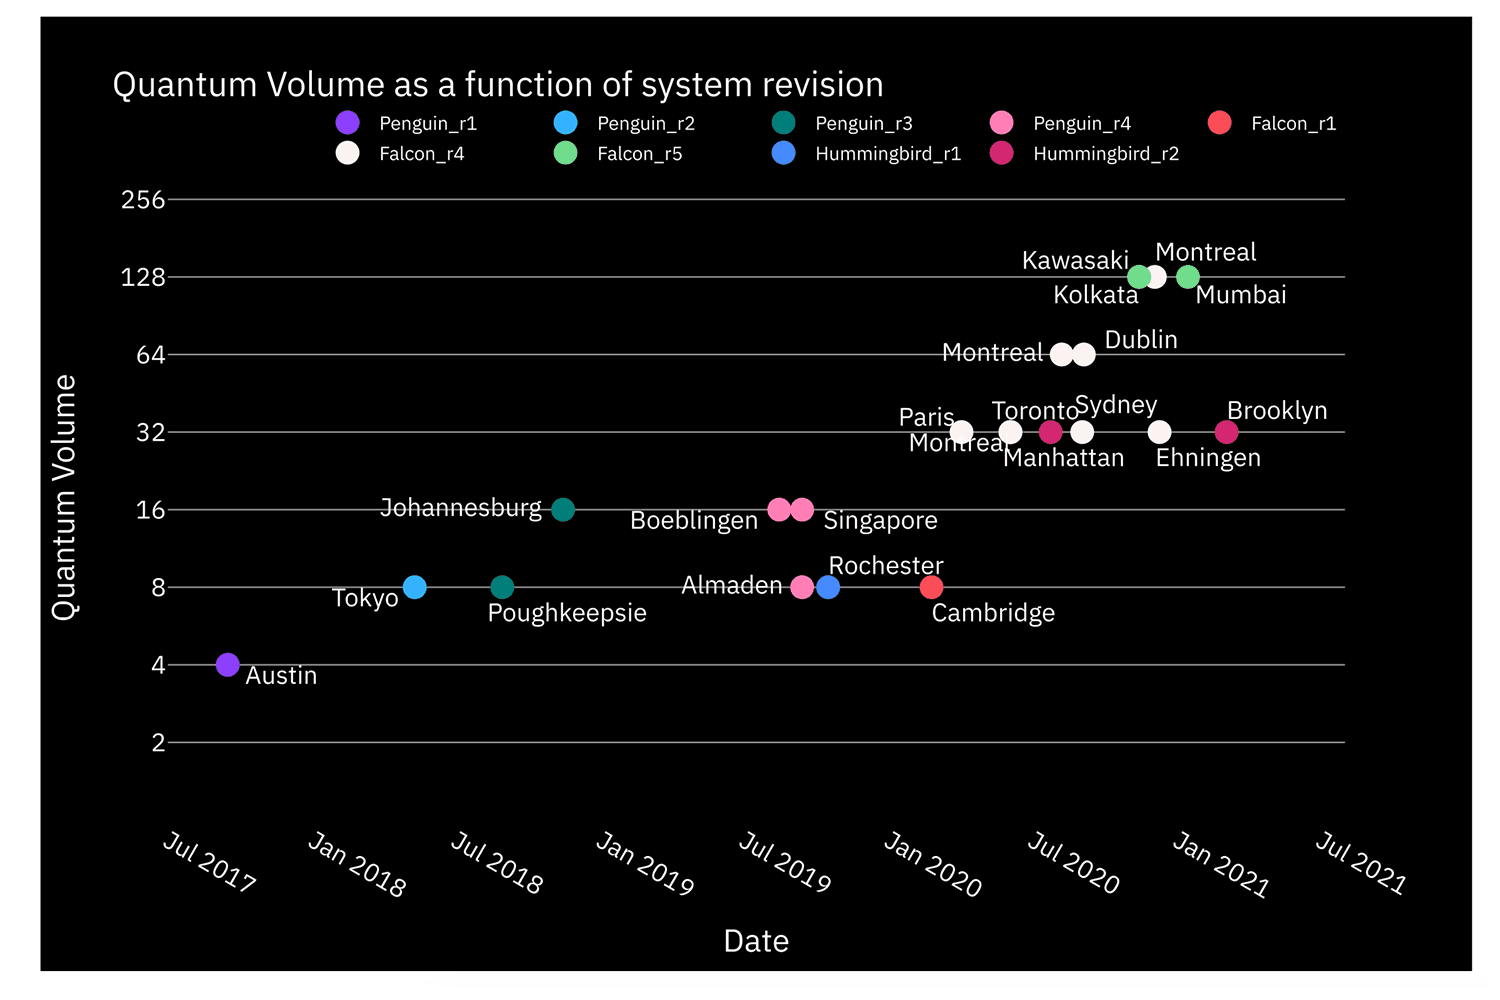 Quantum Volume as a function of system release date for IBM Quantum Penguin, Falcon, and Hummingbird systems. The Falcon and Hummingbird  are based on the heavy-hex topology.